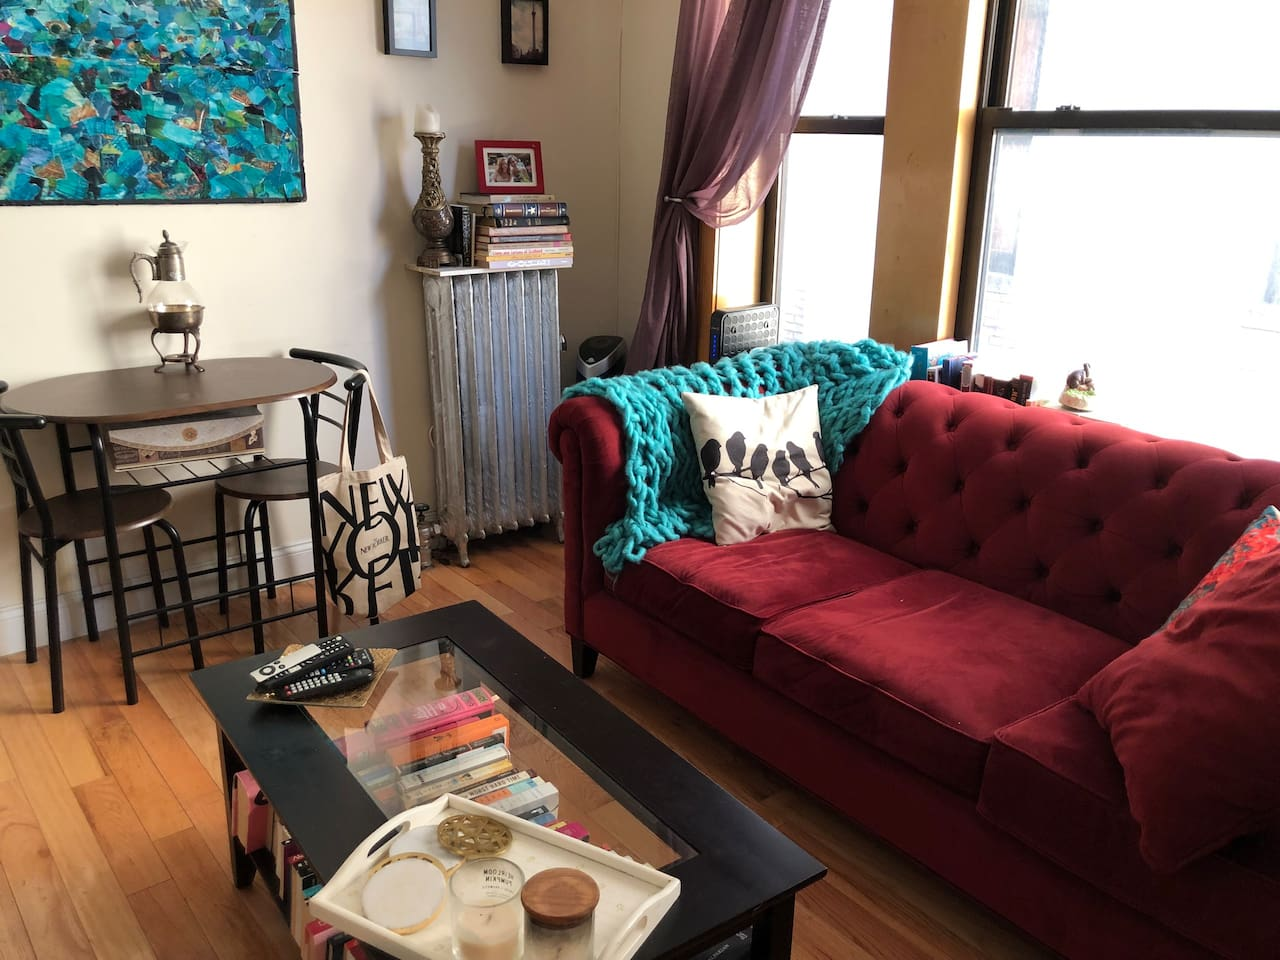 Shared living room has TV with access to Netflix, HBOGo, Hulu, Amazon Prime, and basic channels.